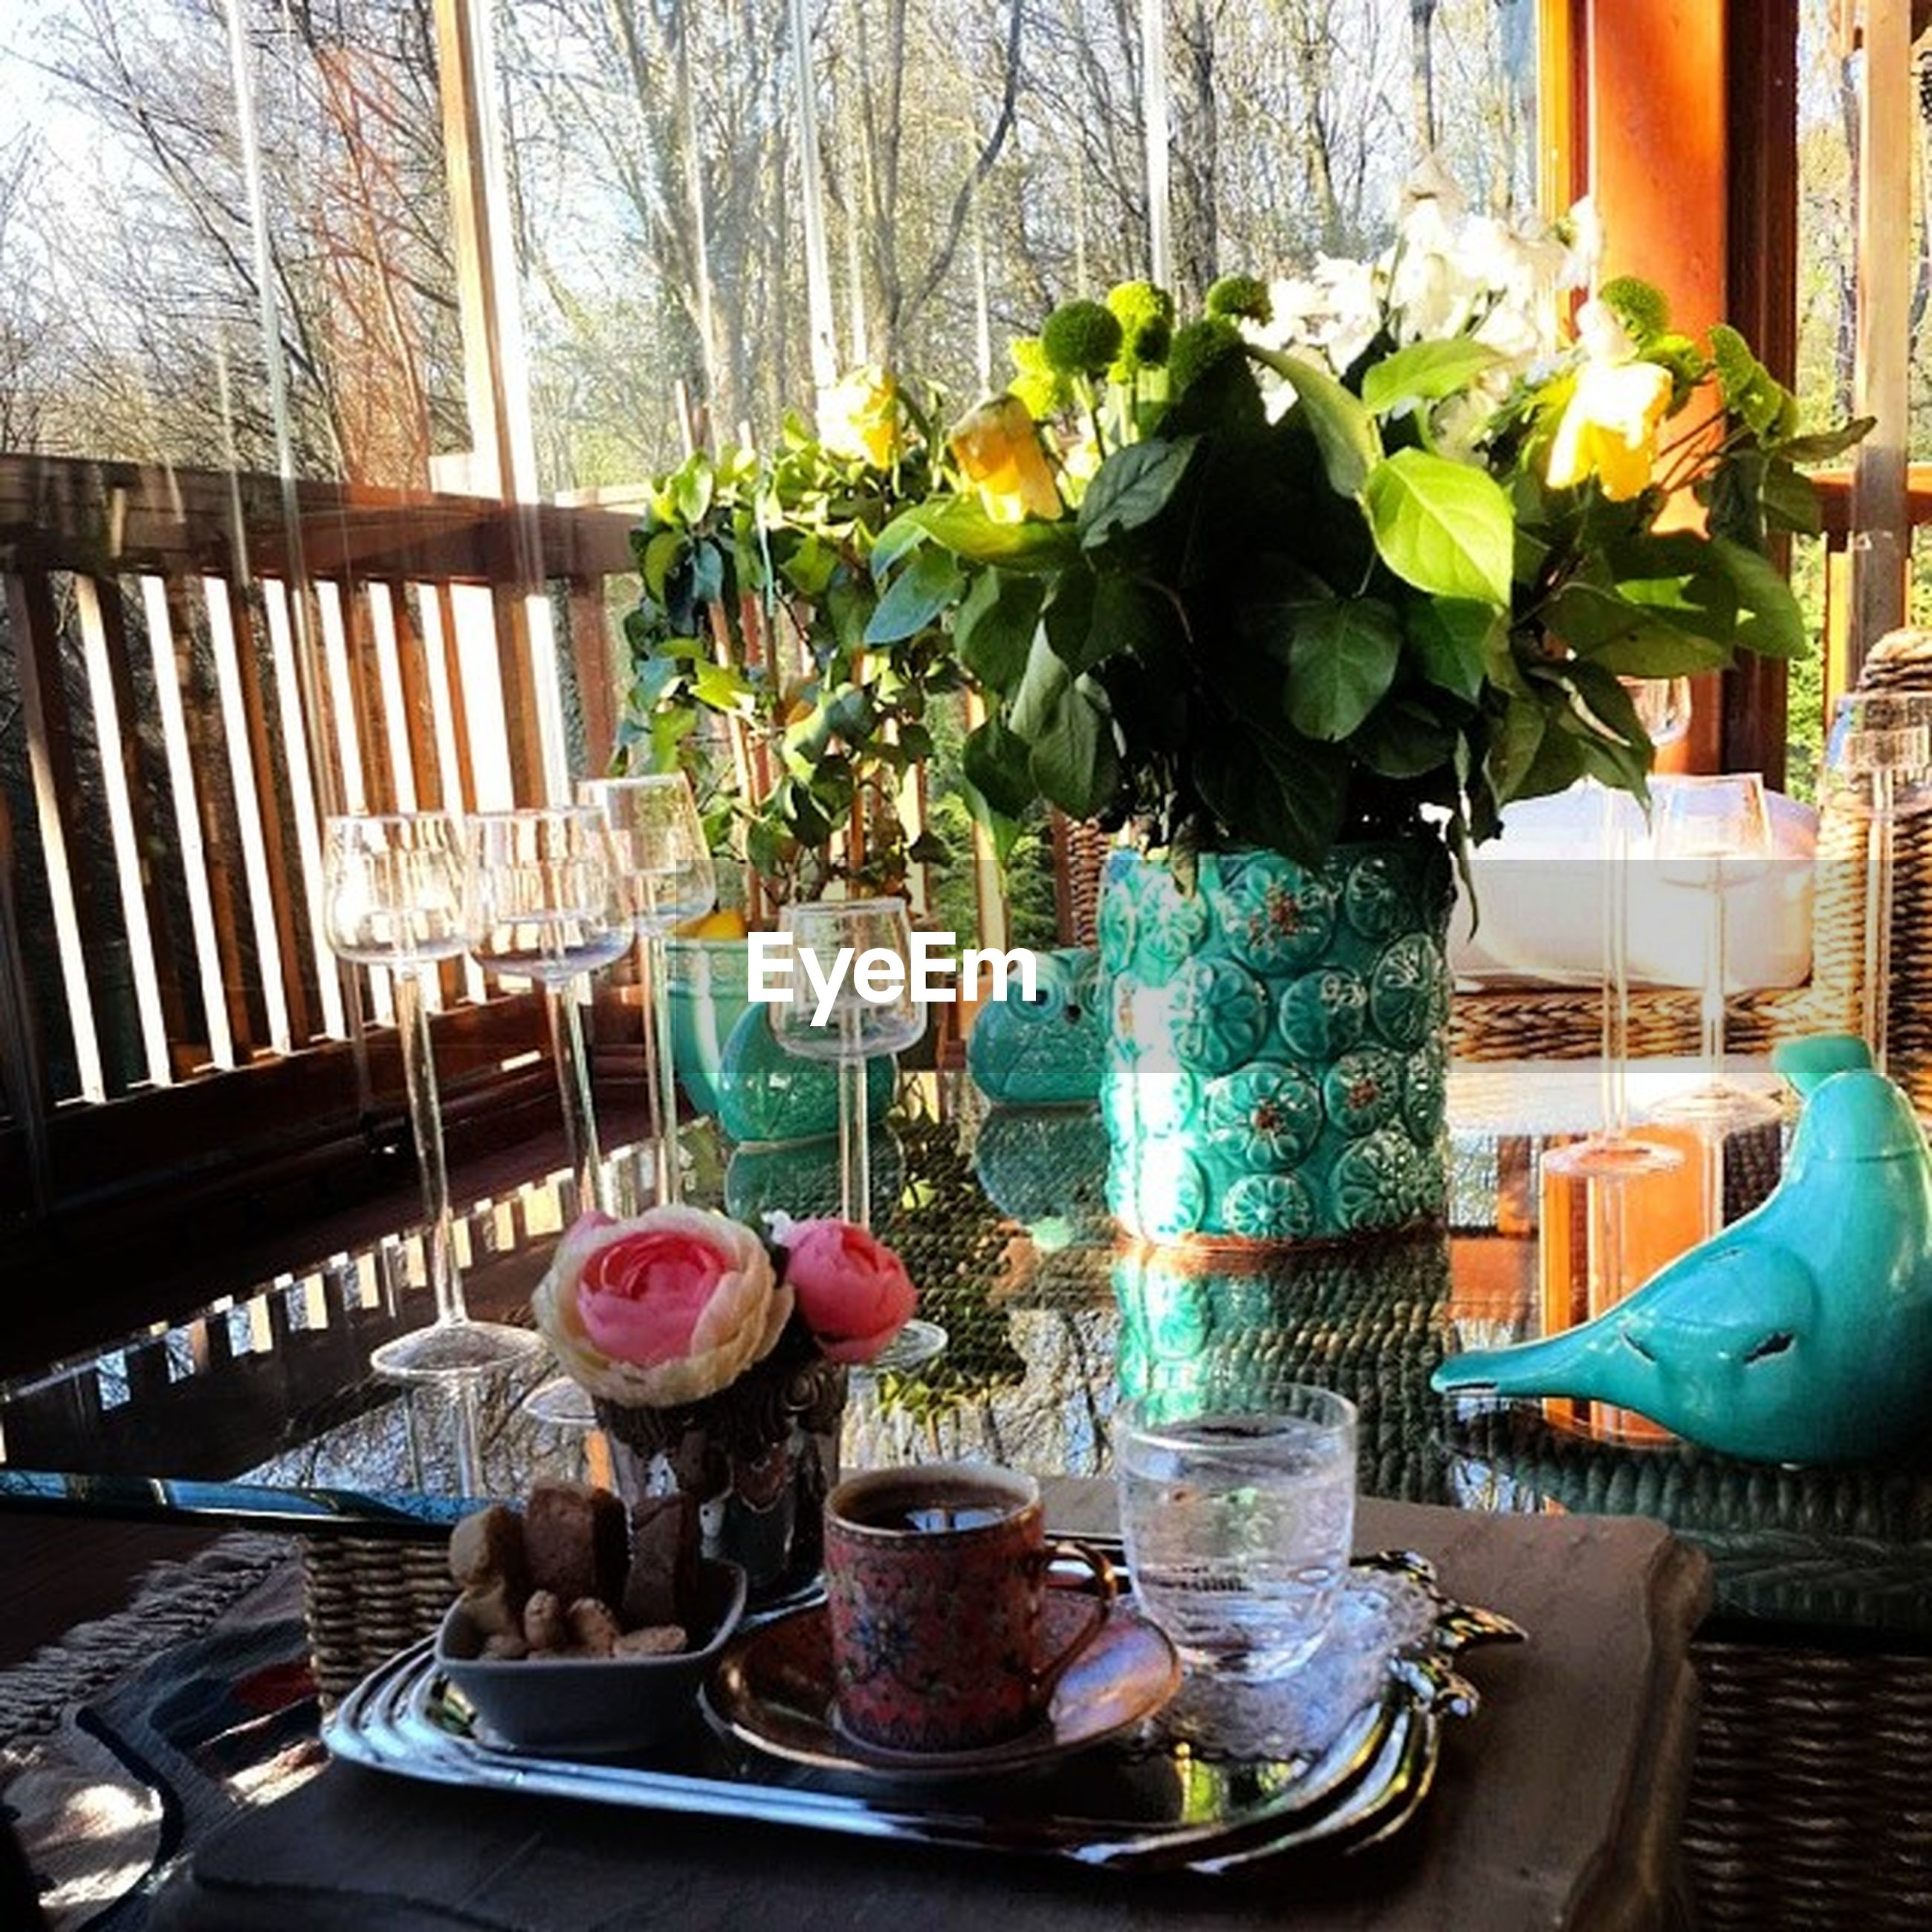 flower, vase, table, indoors, potted plant, freshness, flower pot, decoration, fragility, plant, flower arrangement, chair, glass - material, growth, home interior, window, bouquet, petal, still life, wood - material